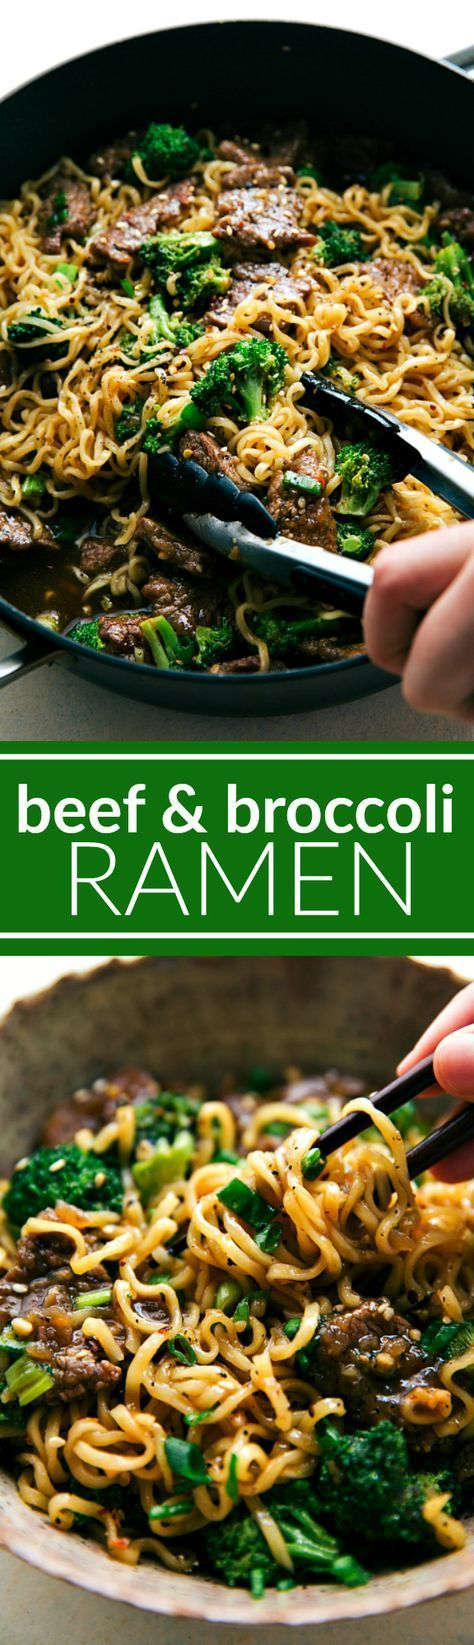 Beef and broccoli served over ramen